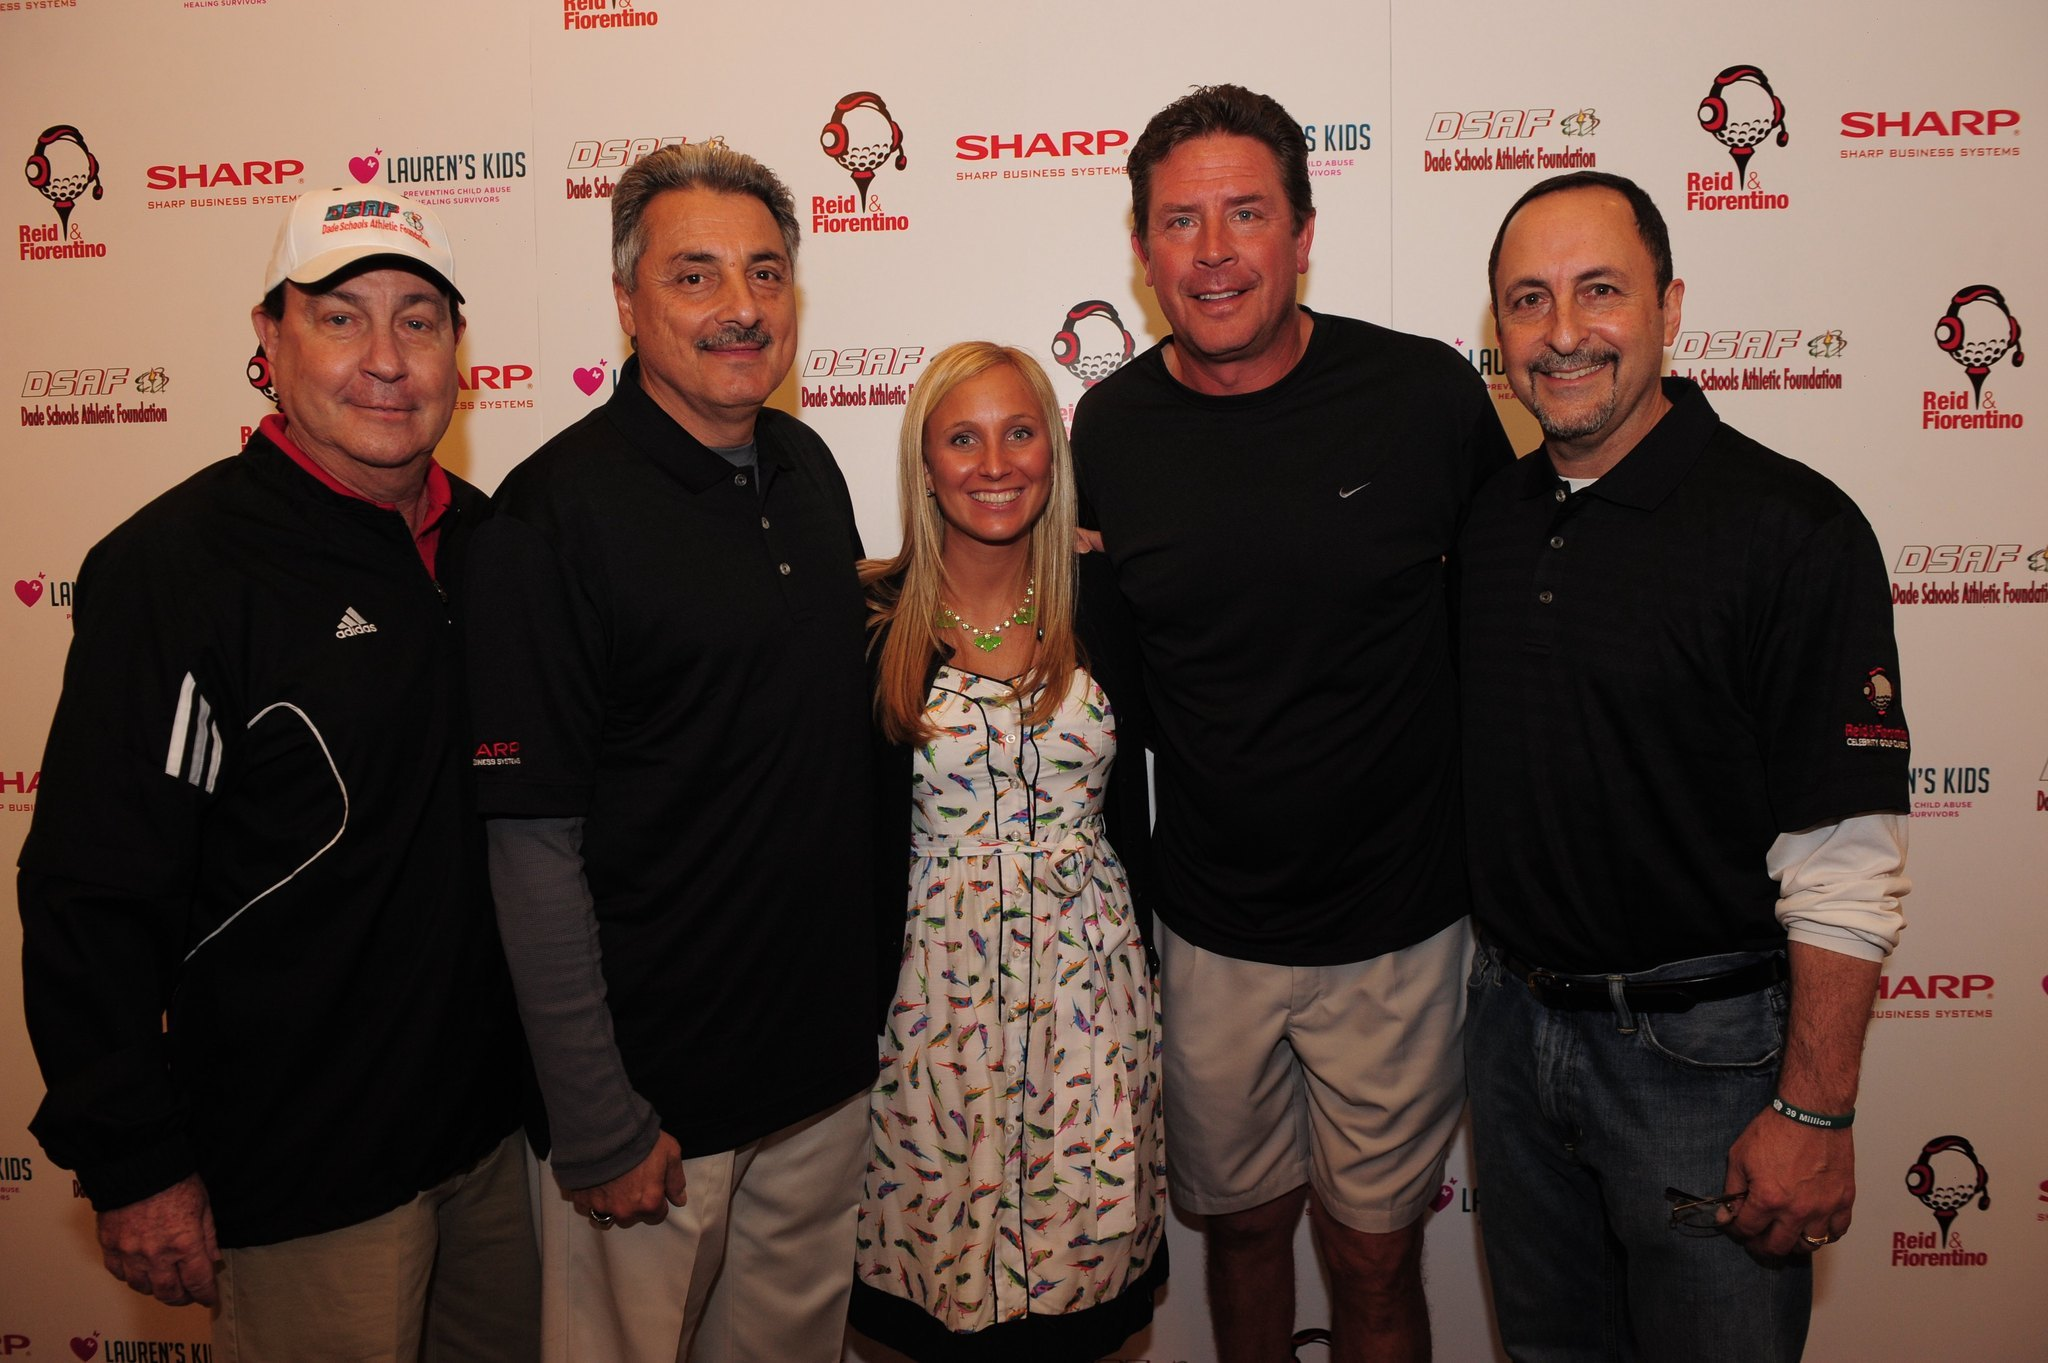 Celeb-spotting around South Florida - Harold Cole, Fiorentino, Lauren Book, Dan Marino and Eric Reid